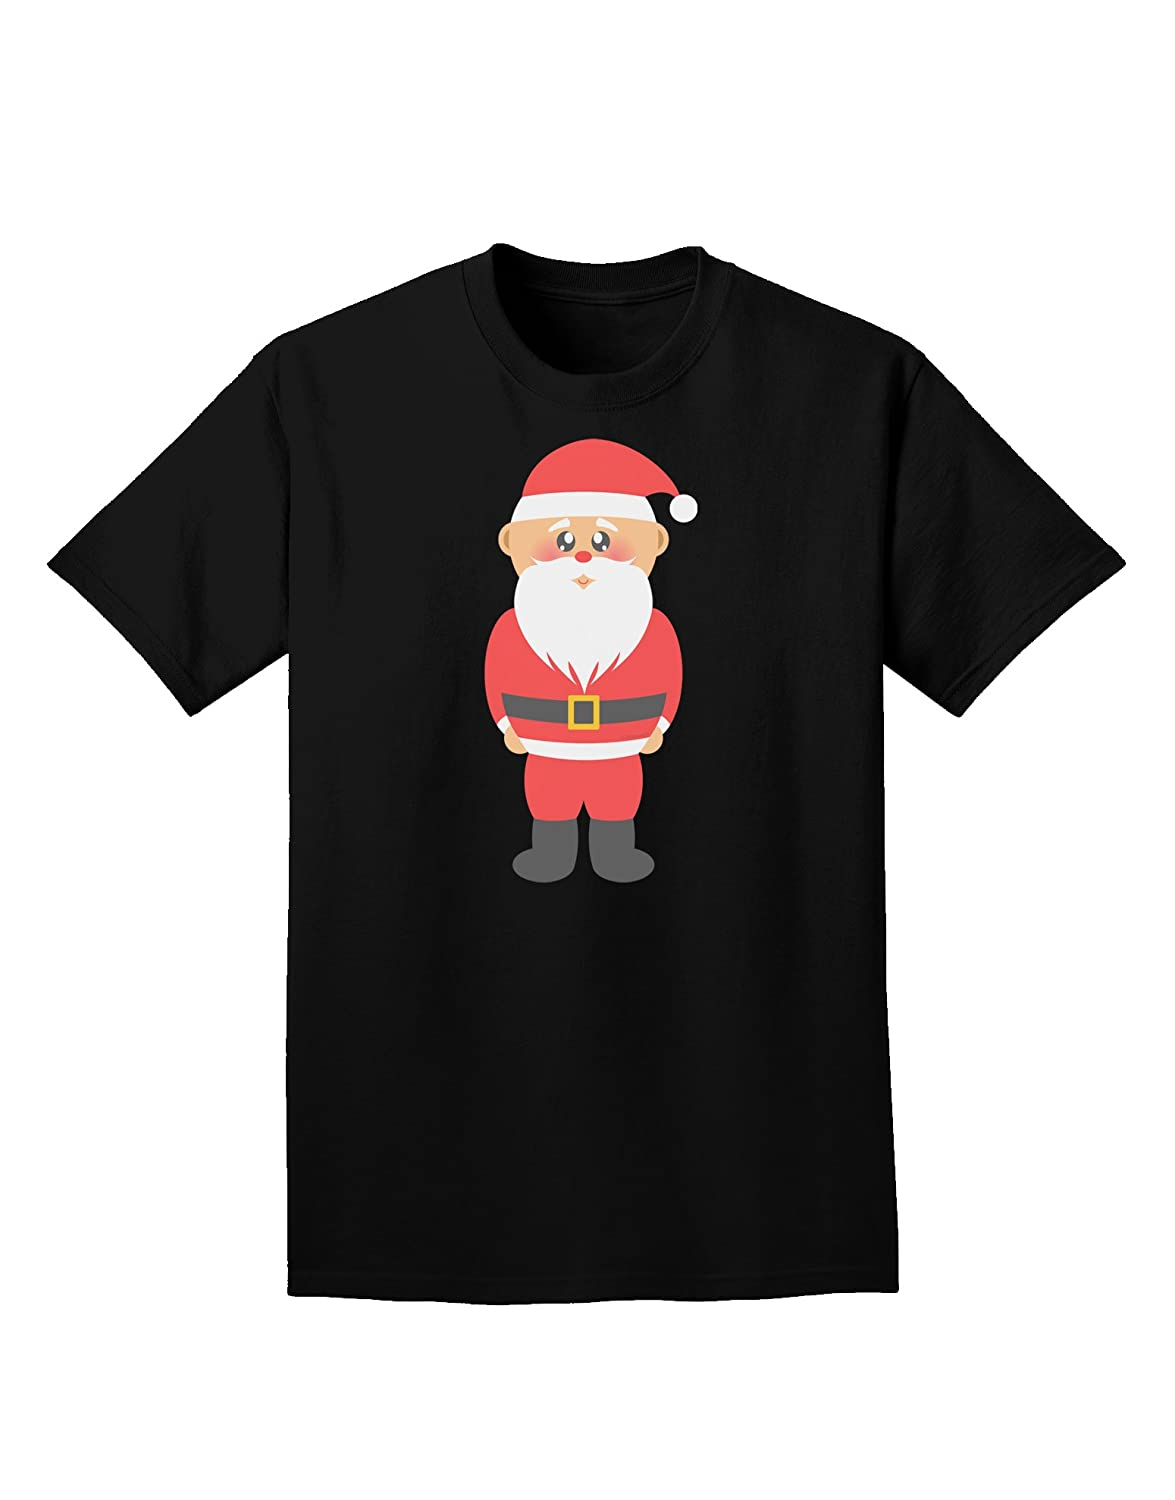 36ec2242 Top13: TooLoud Cute Santa Claus Christmas Adult Dark T-Shirt